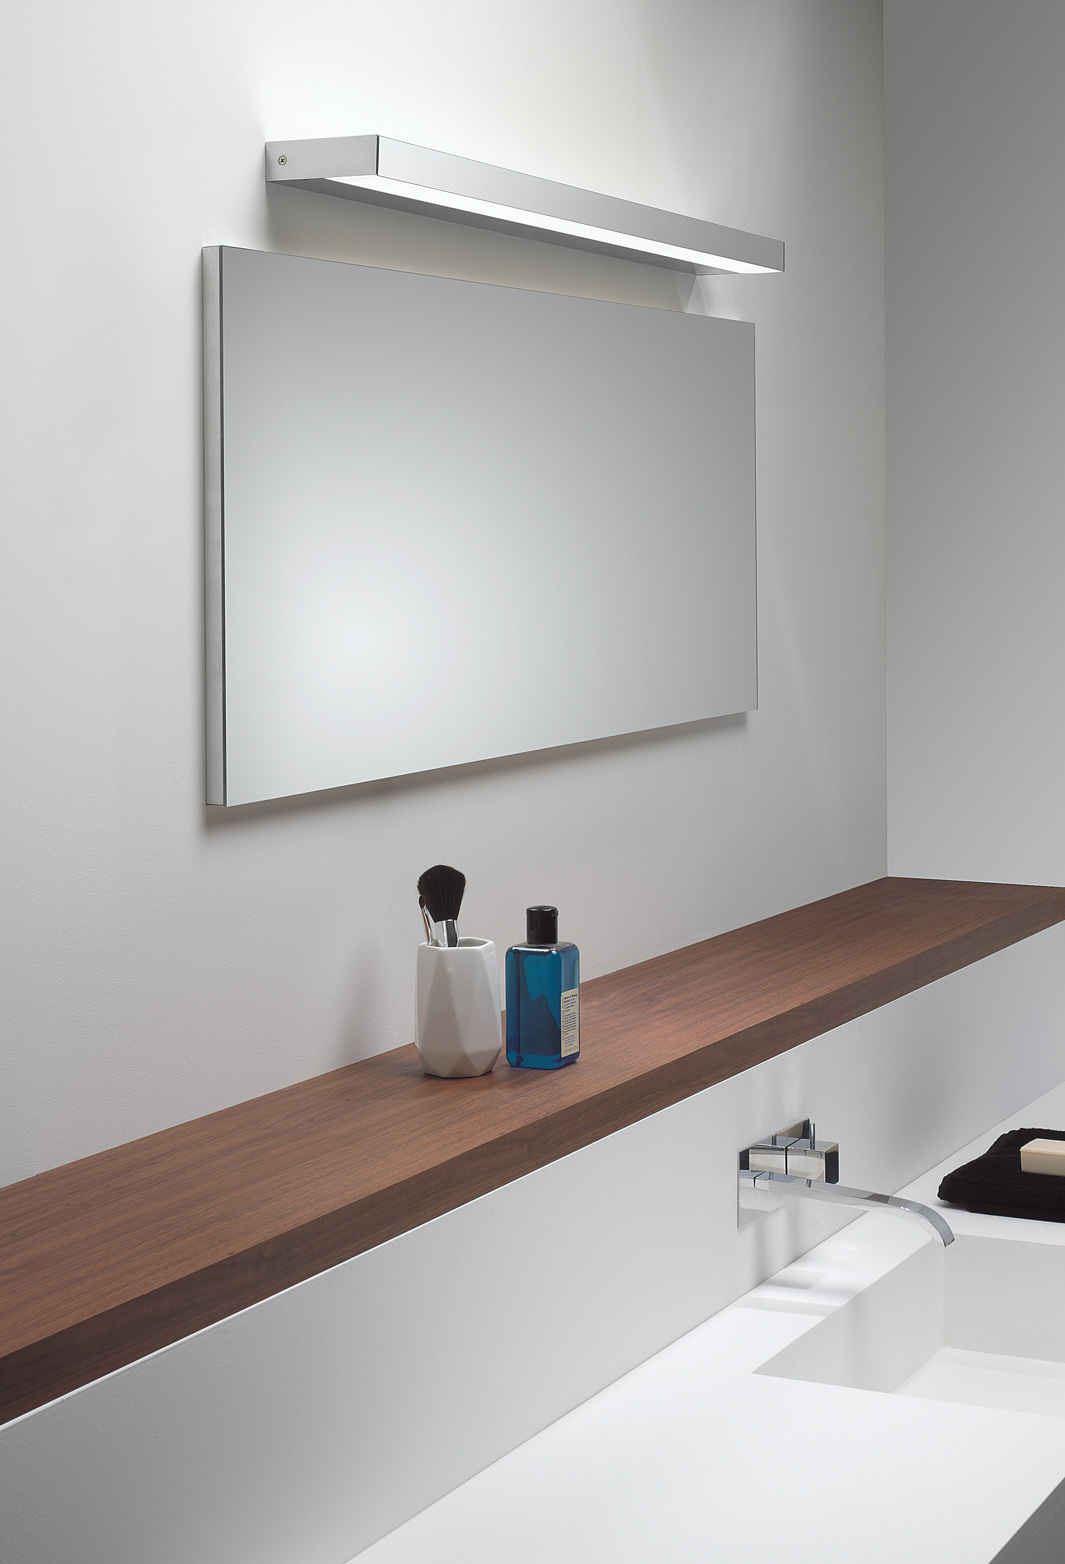 Astro axios led ip44 bathroom wall light mirror light up for Lights for bathroom mirrors